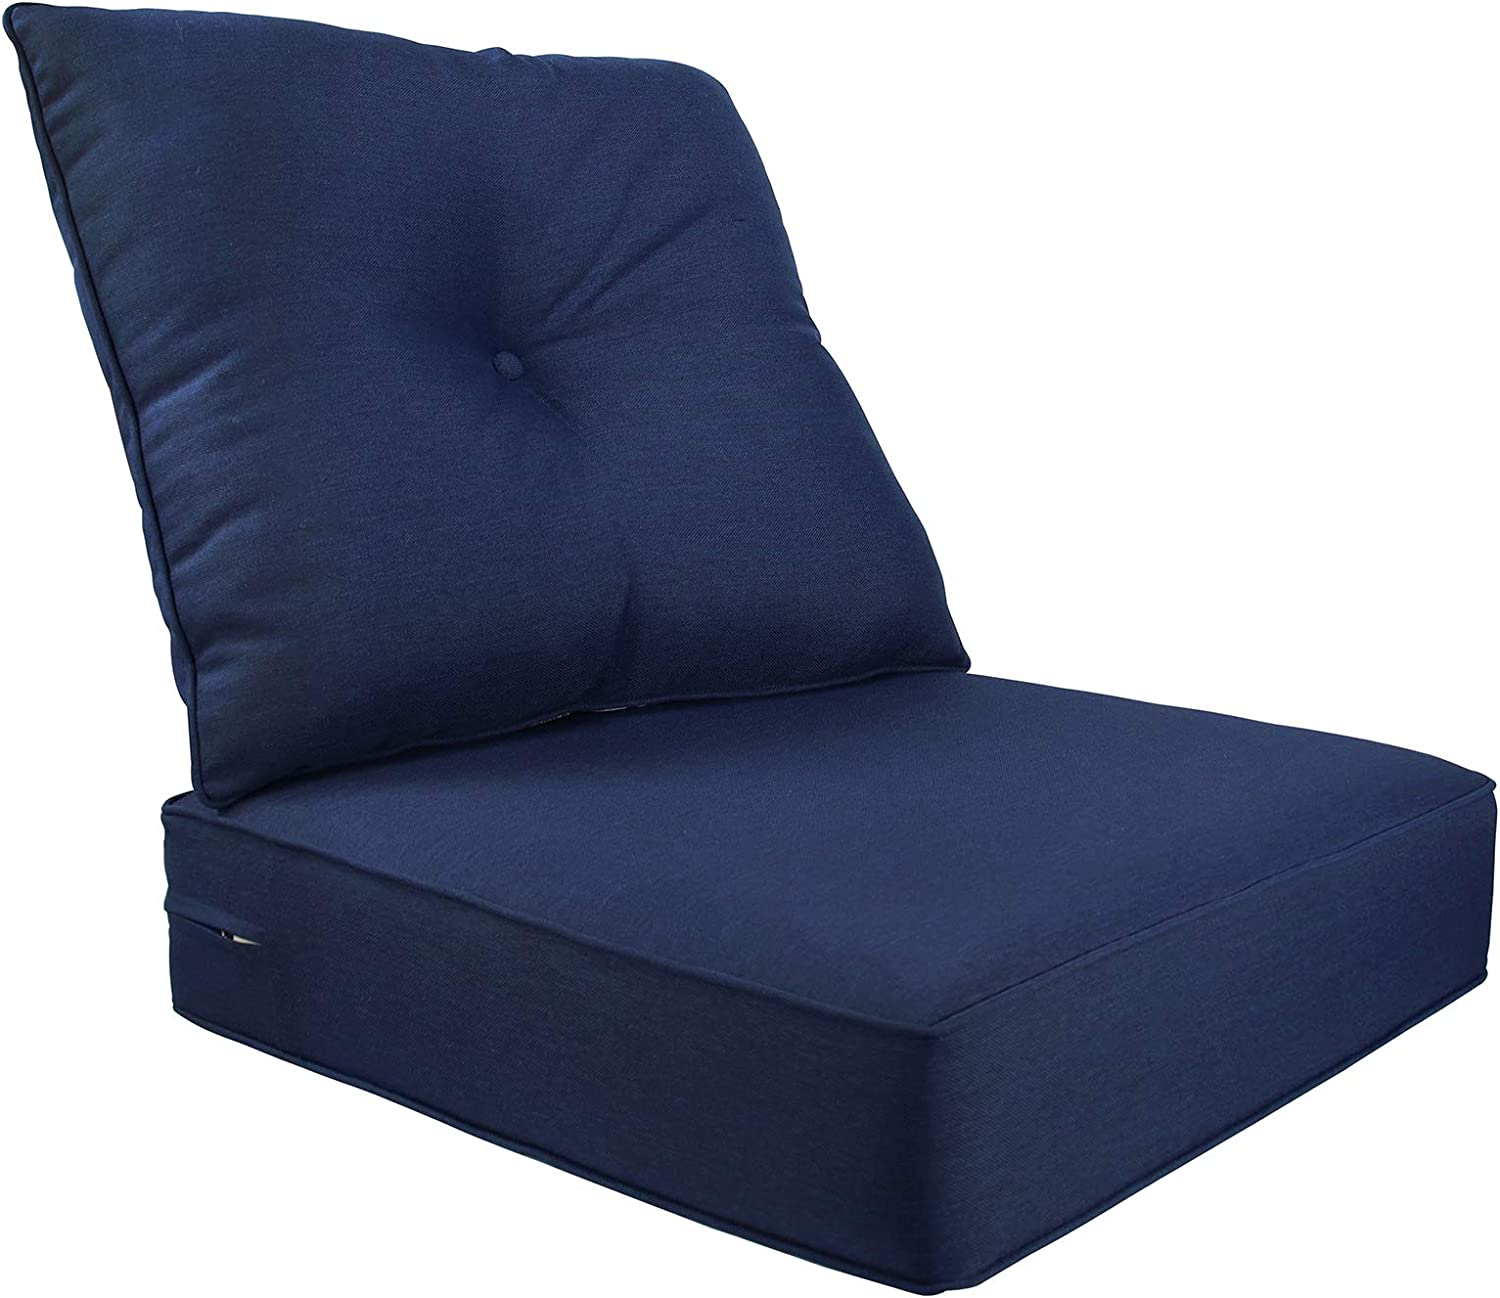 Bossima Indoor/Outdoor Deep Seat Chair Cushion Set,Spring/Summer Seasonal Replacement Cushions (Olefin Navy Blue)